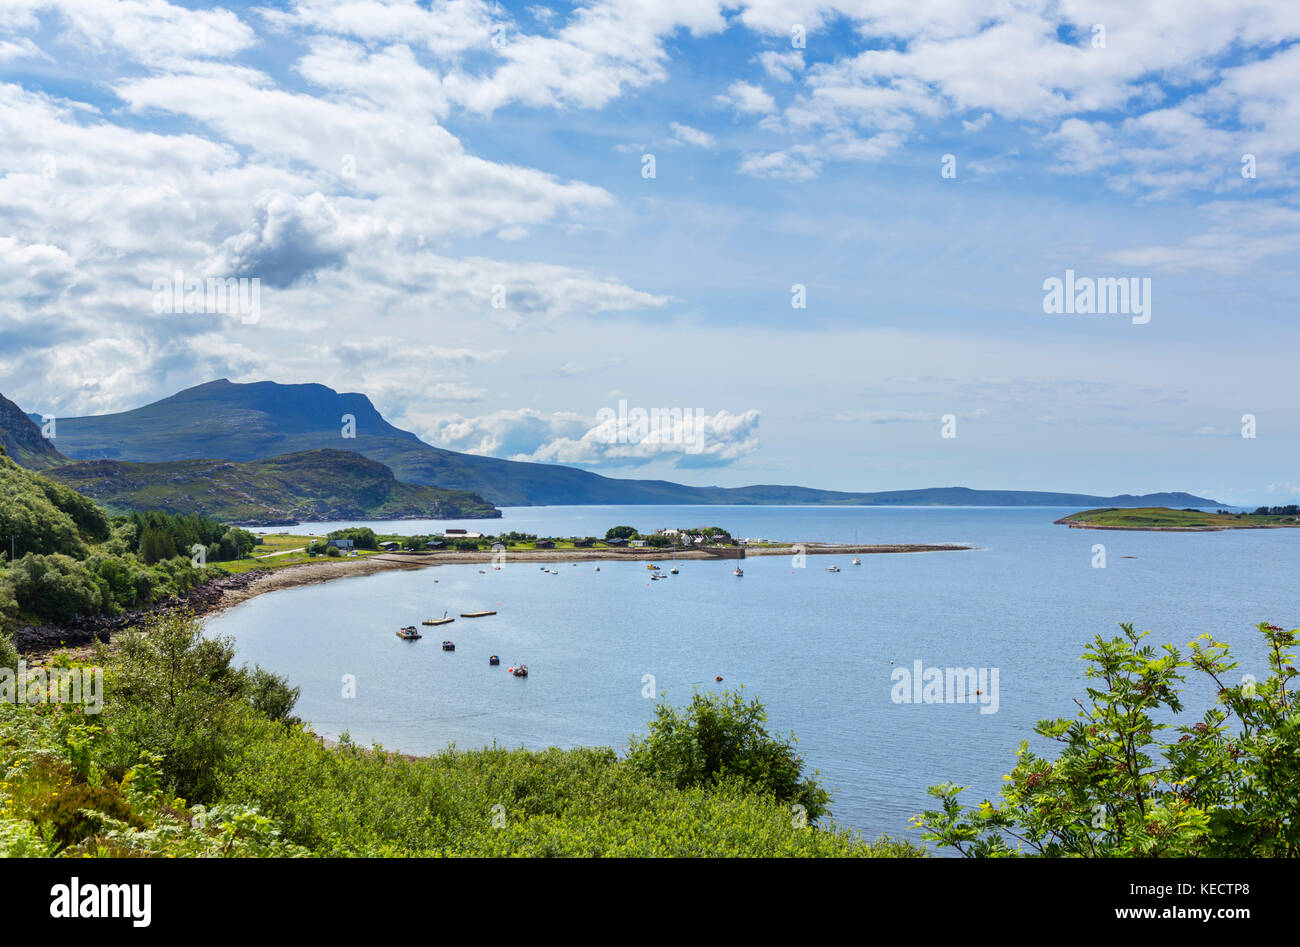 View over Ardmair Point from the the A835, part of the North Coast 500 scenic route, Wester Ross, Highland, Scotland, - Stock Image